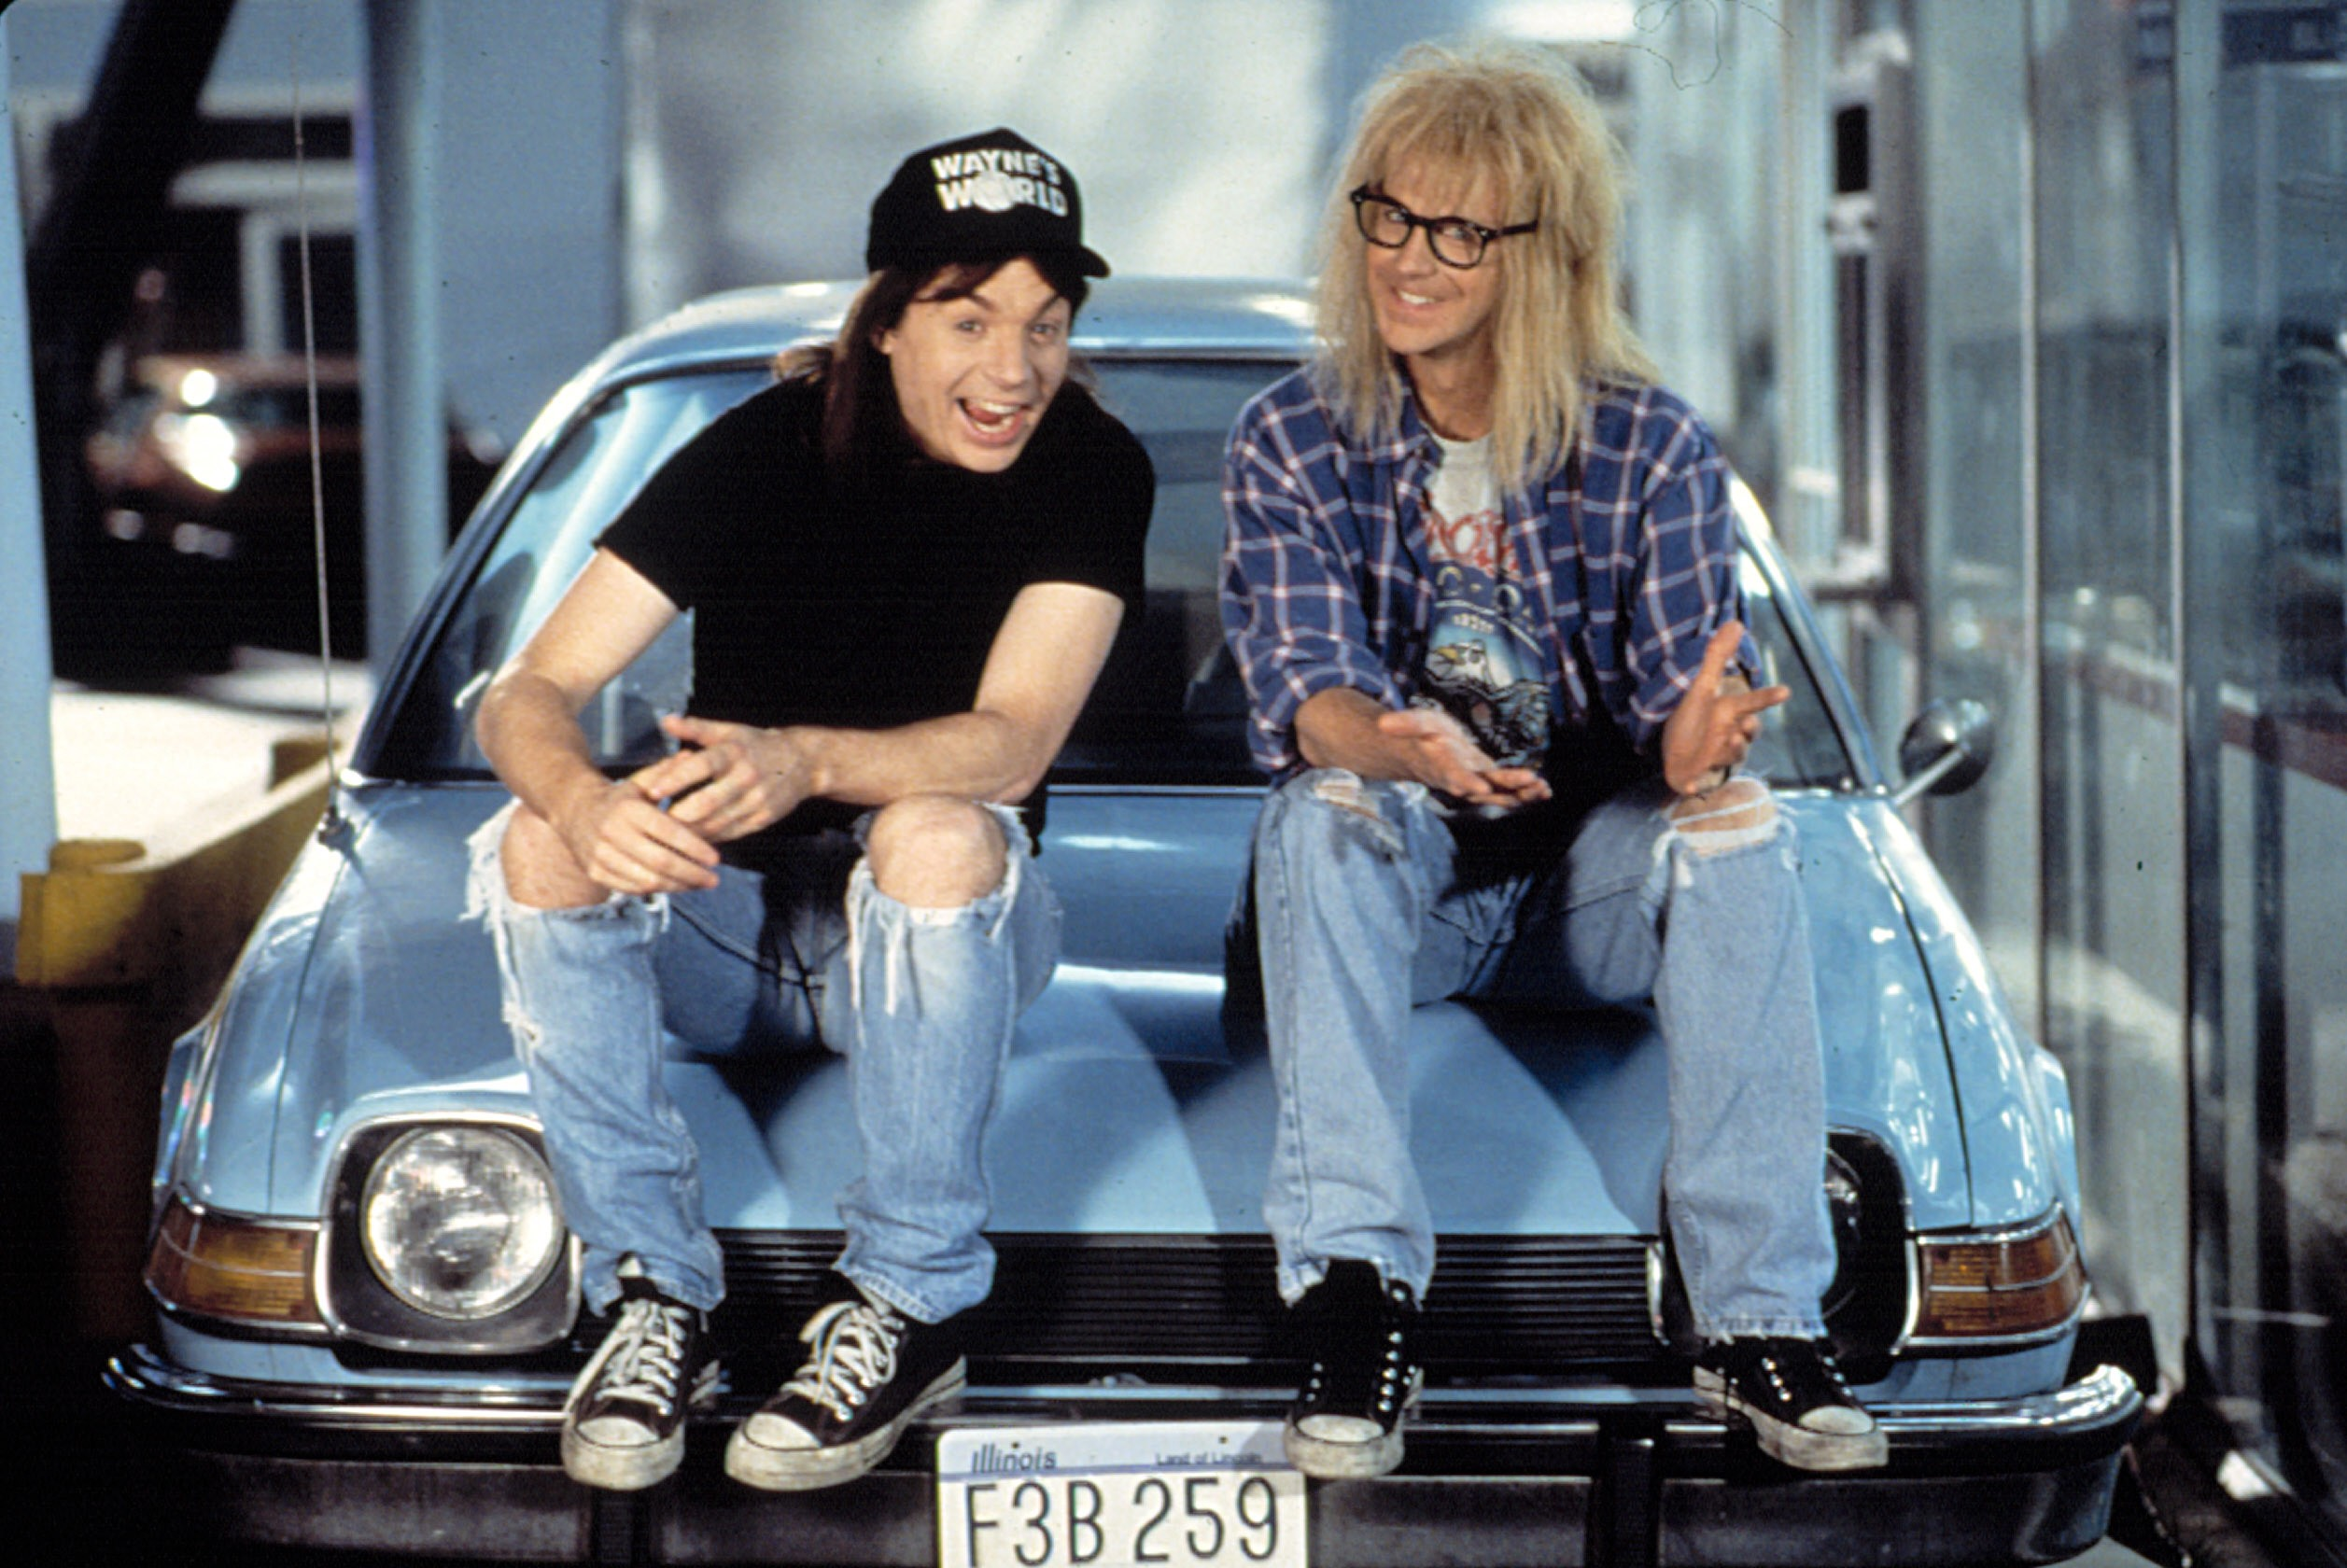 WAYNE'S WORLD 2, Mike Myers, Dana Carvey, 1993